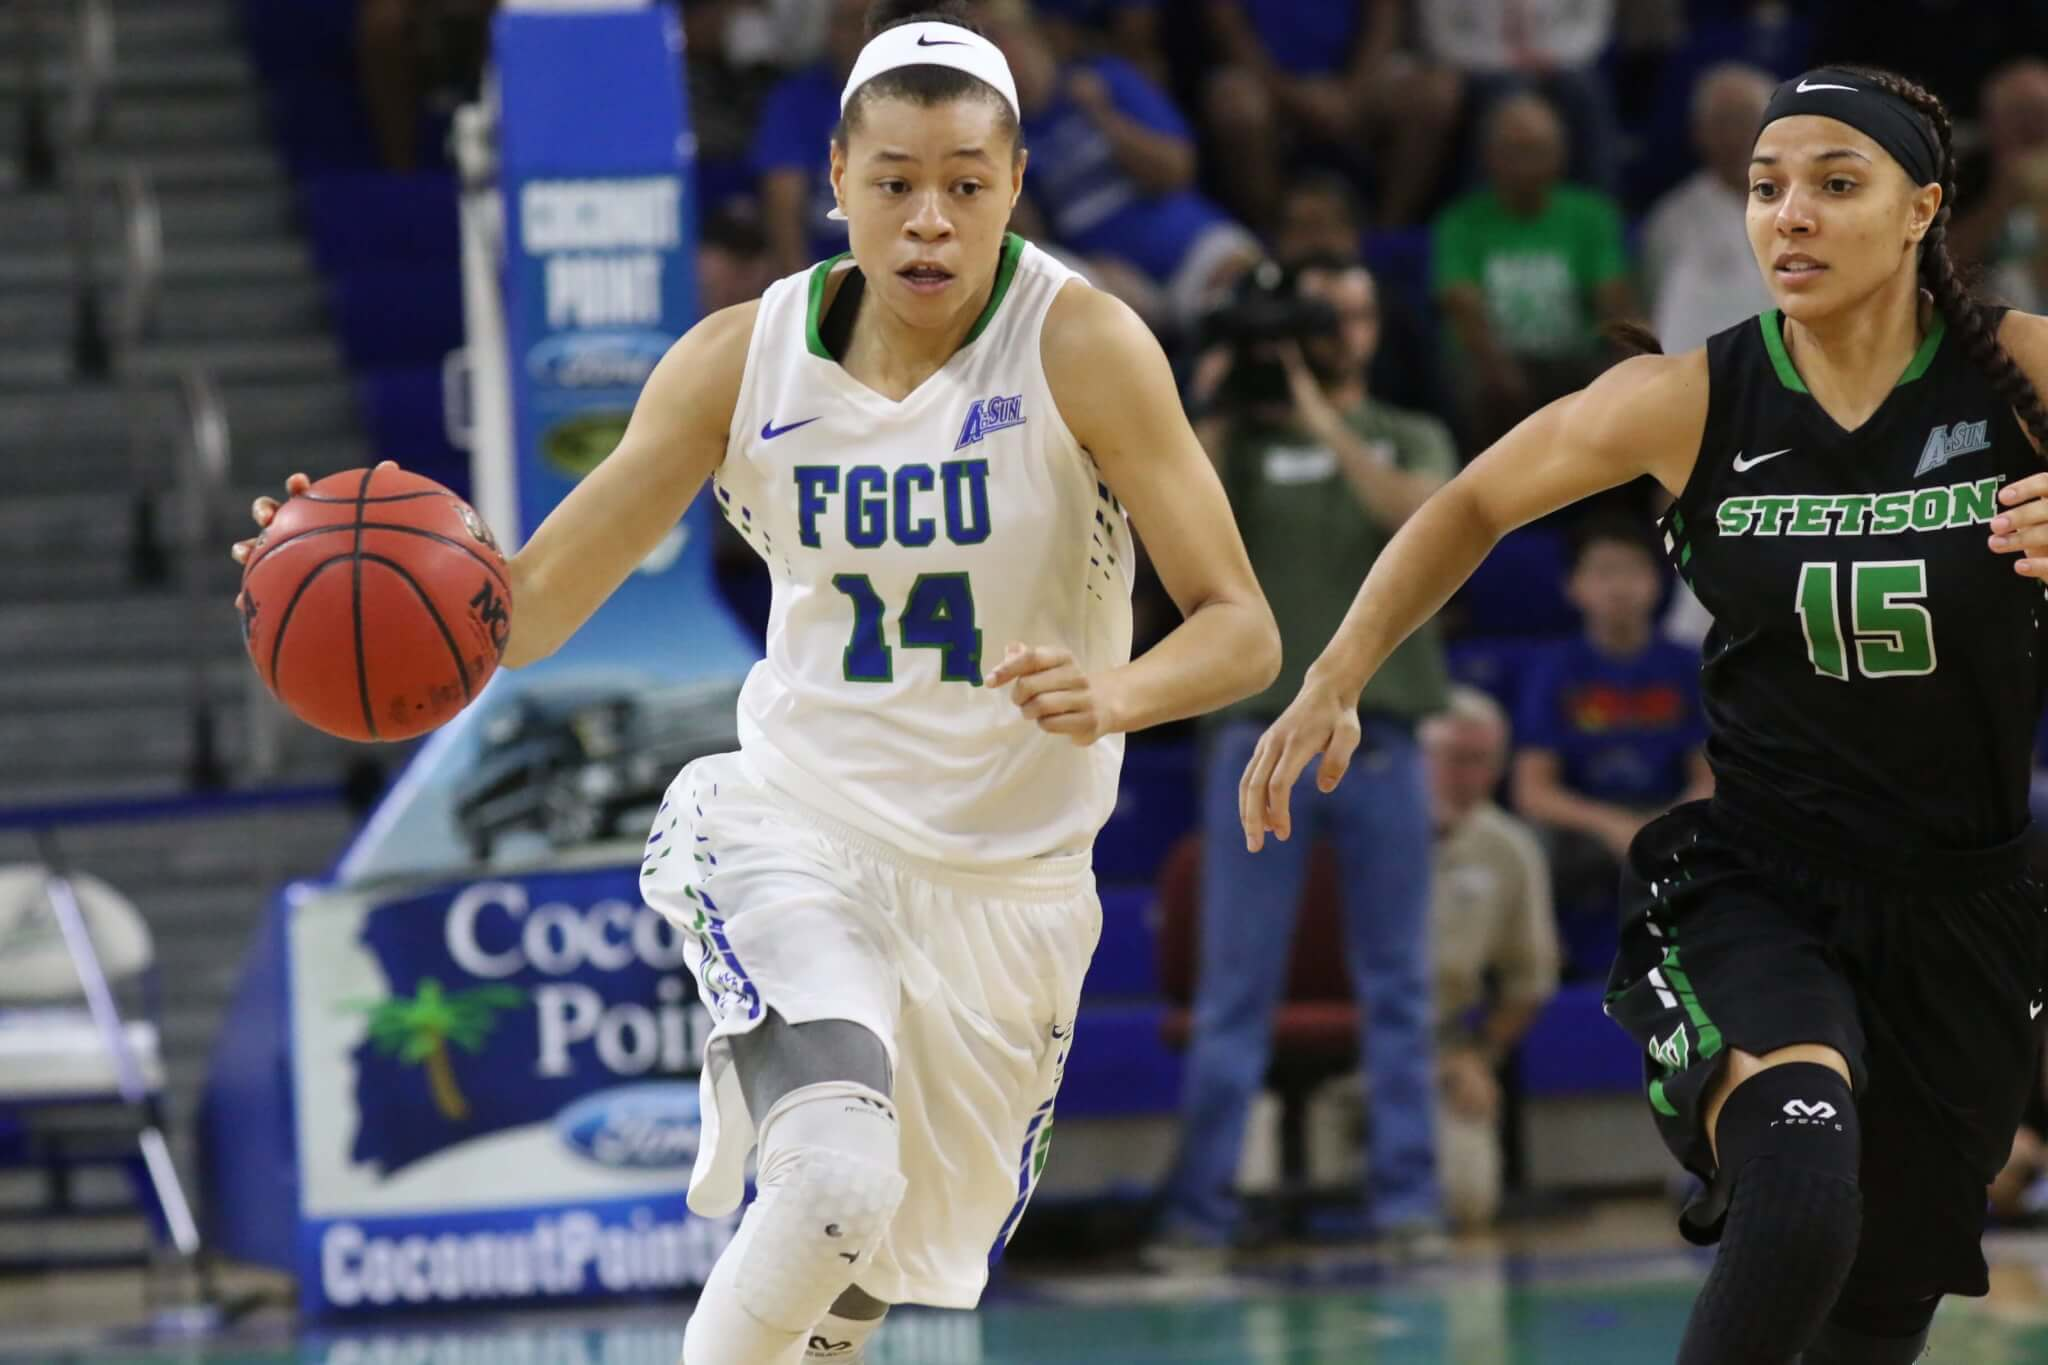 Whitney Knight just fine after injury scare in A-Sun semifinal